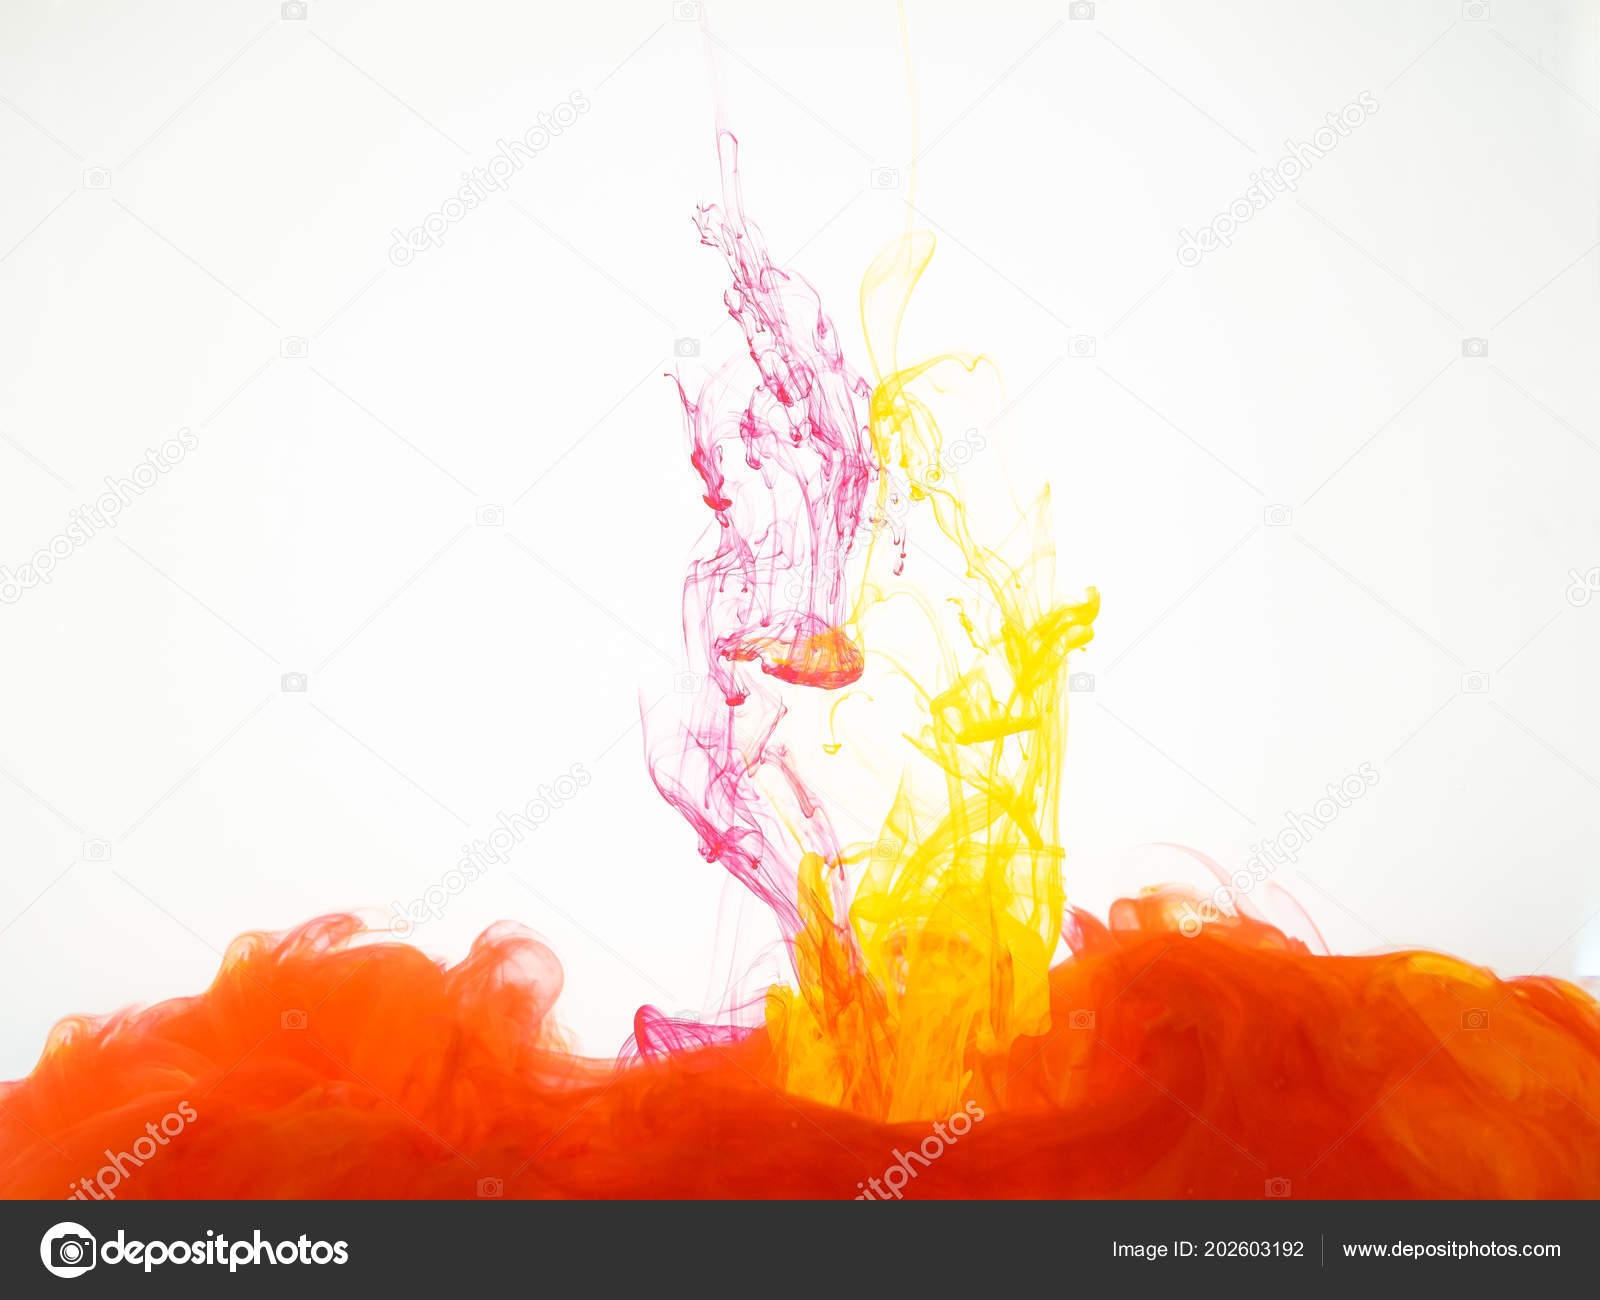 Colourful explosion of acrylic ink isolated on white